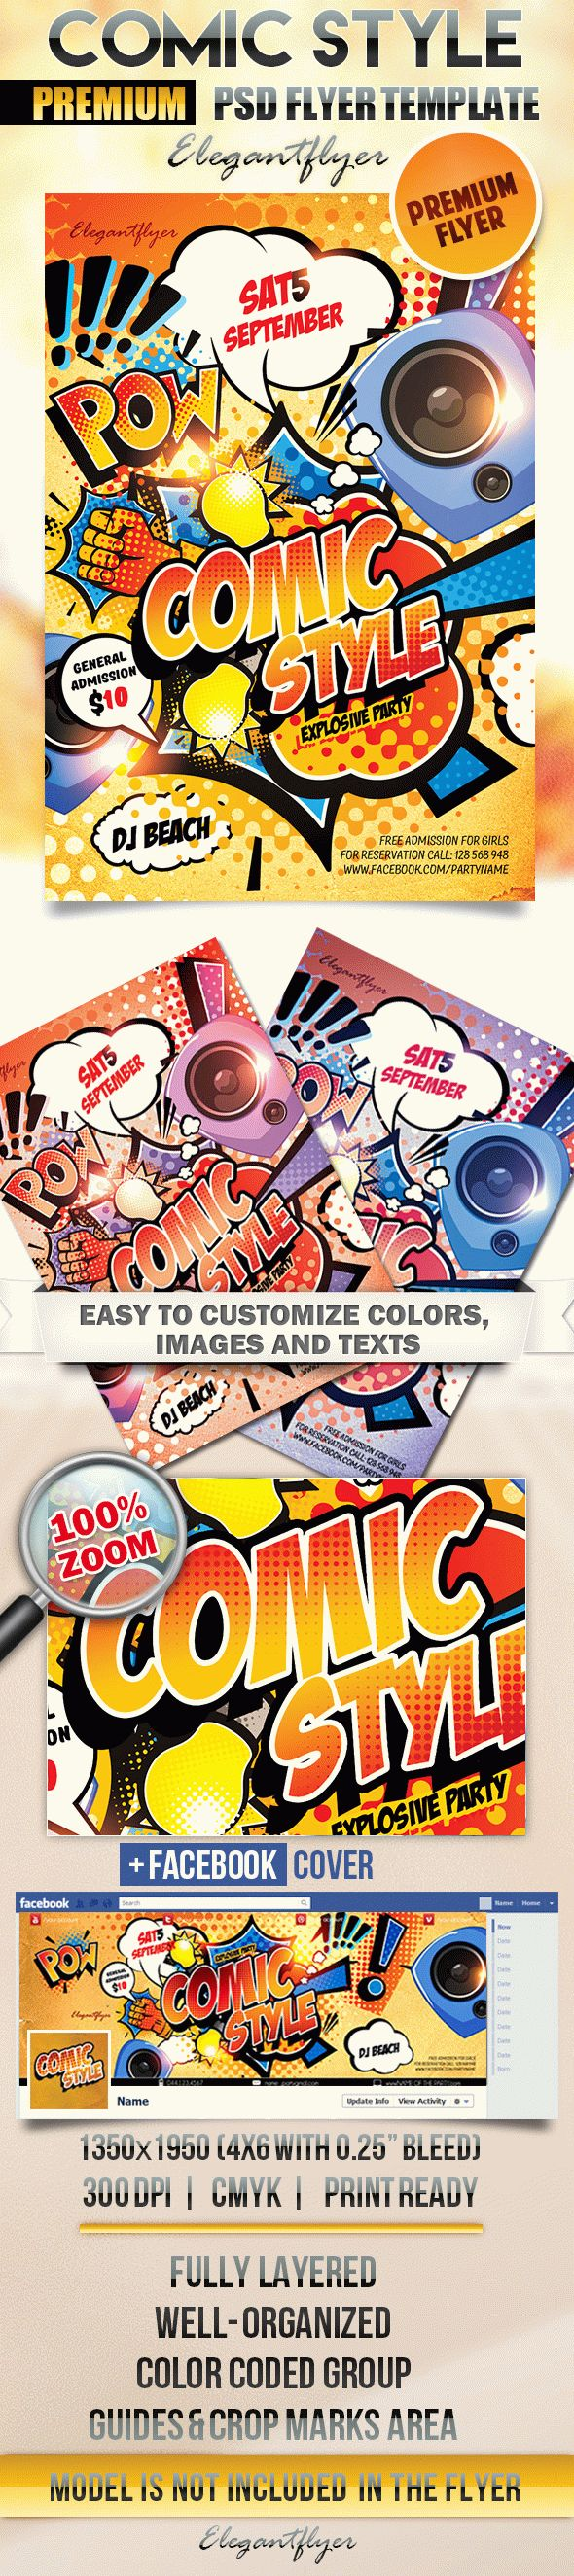 Comic style flyer psd template facebook cover by for Comic book page template psd